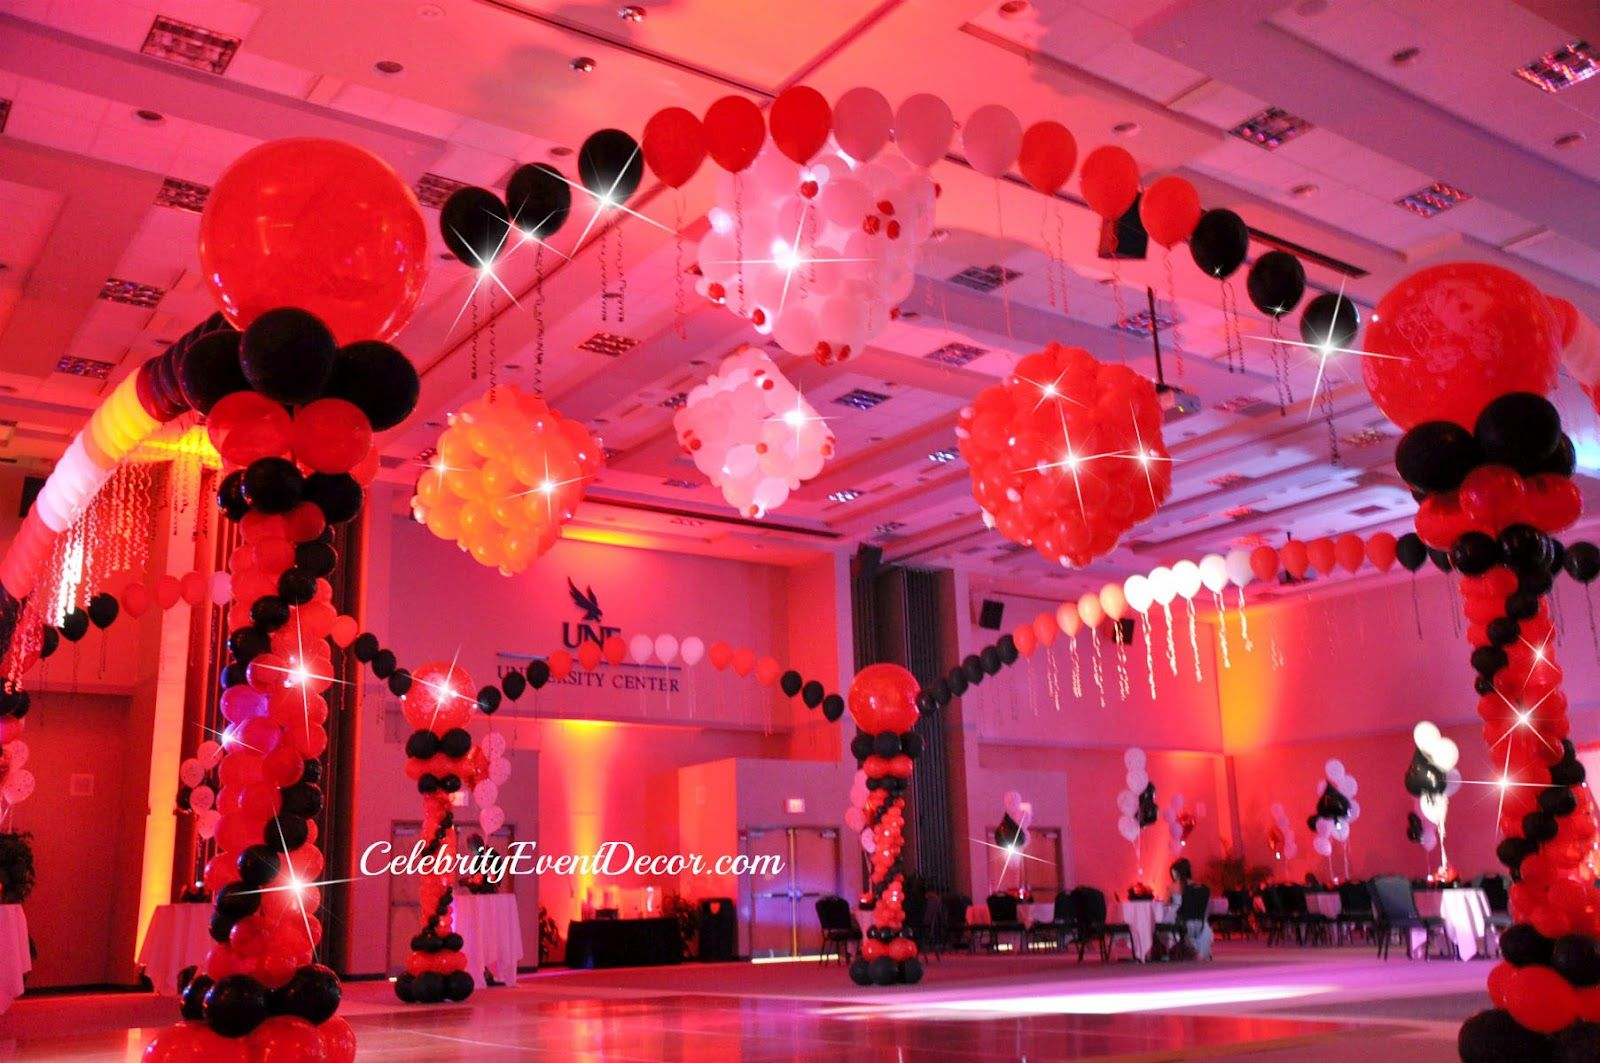 Englewood High School Prom 2012 Casino Theme Prom Decorations Amazing Dance Floor Decor Made Out Of 6 12ft B Prom Decor Prom Themes Casino Decorations